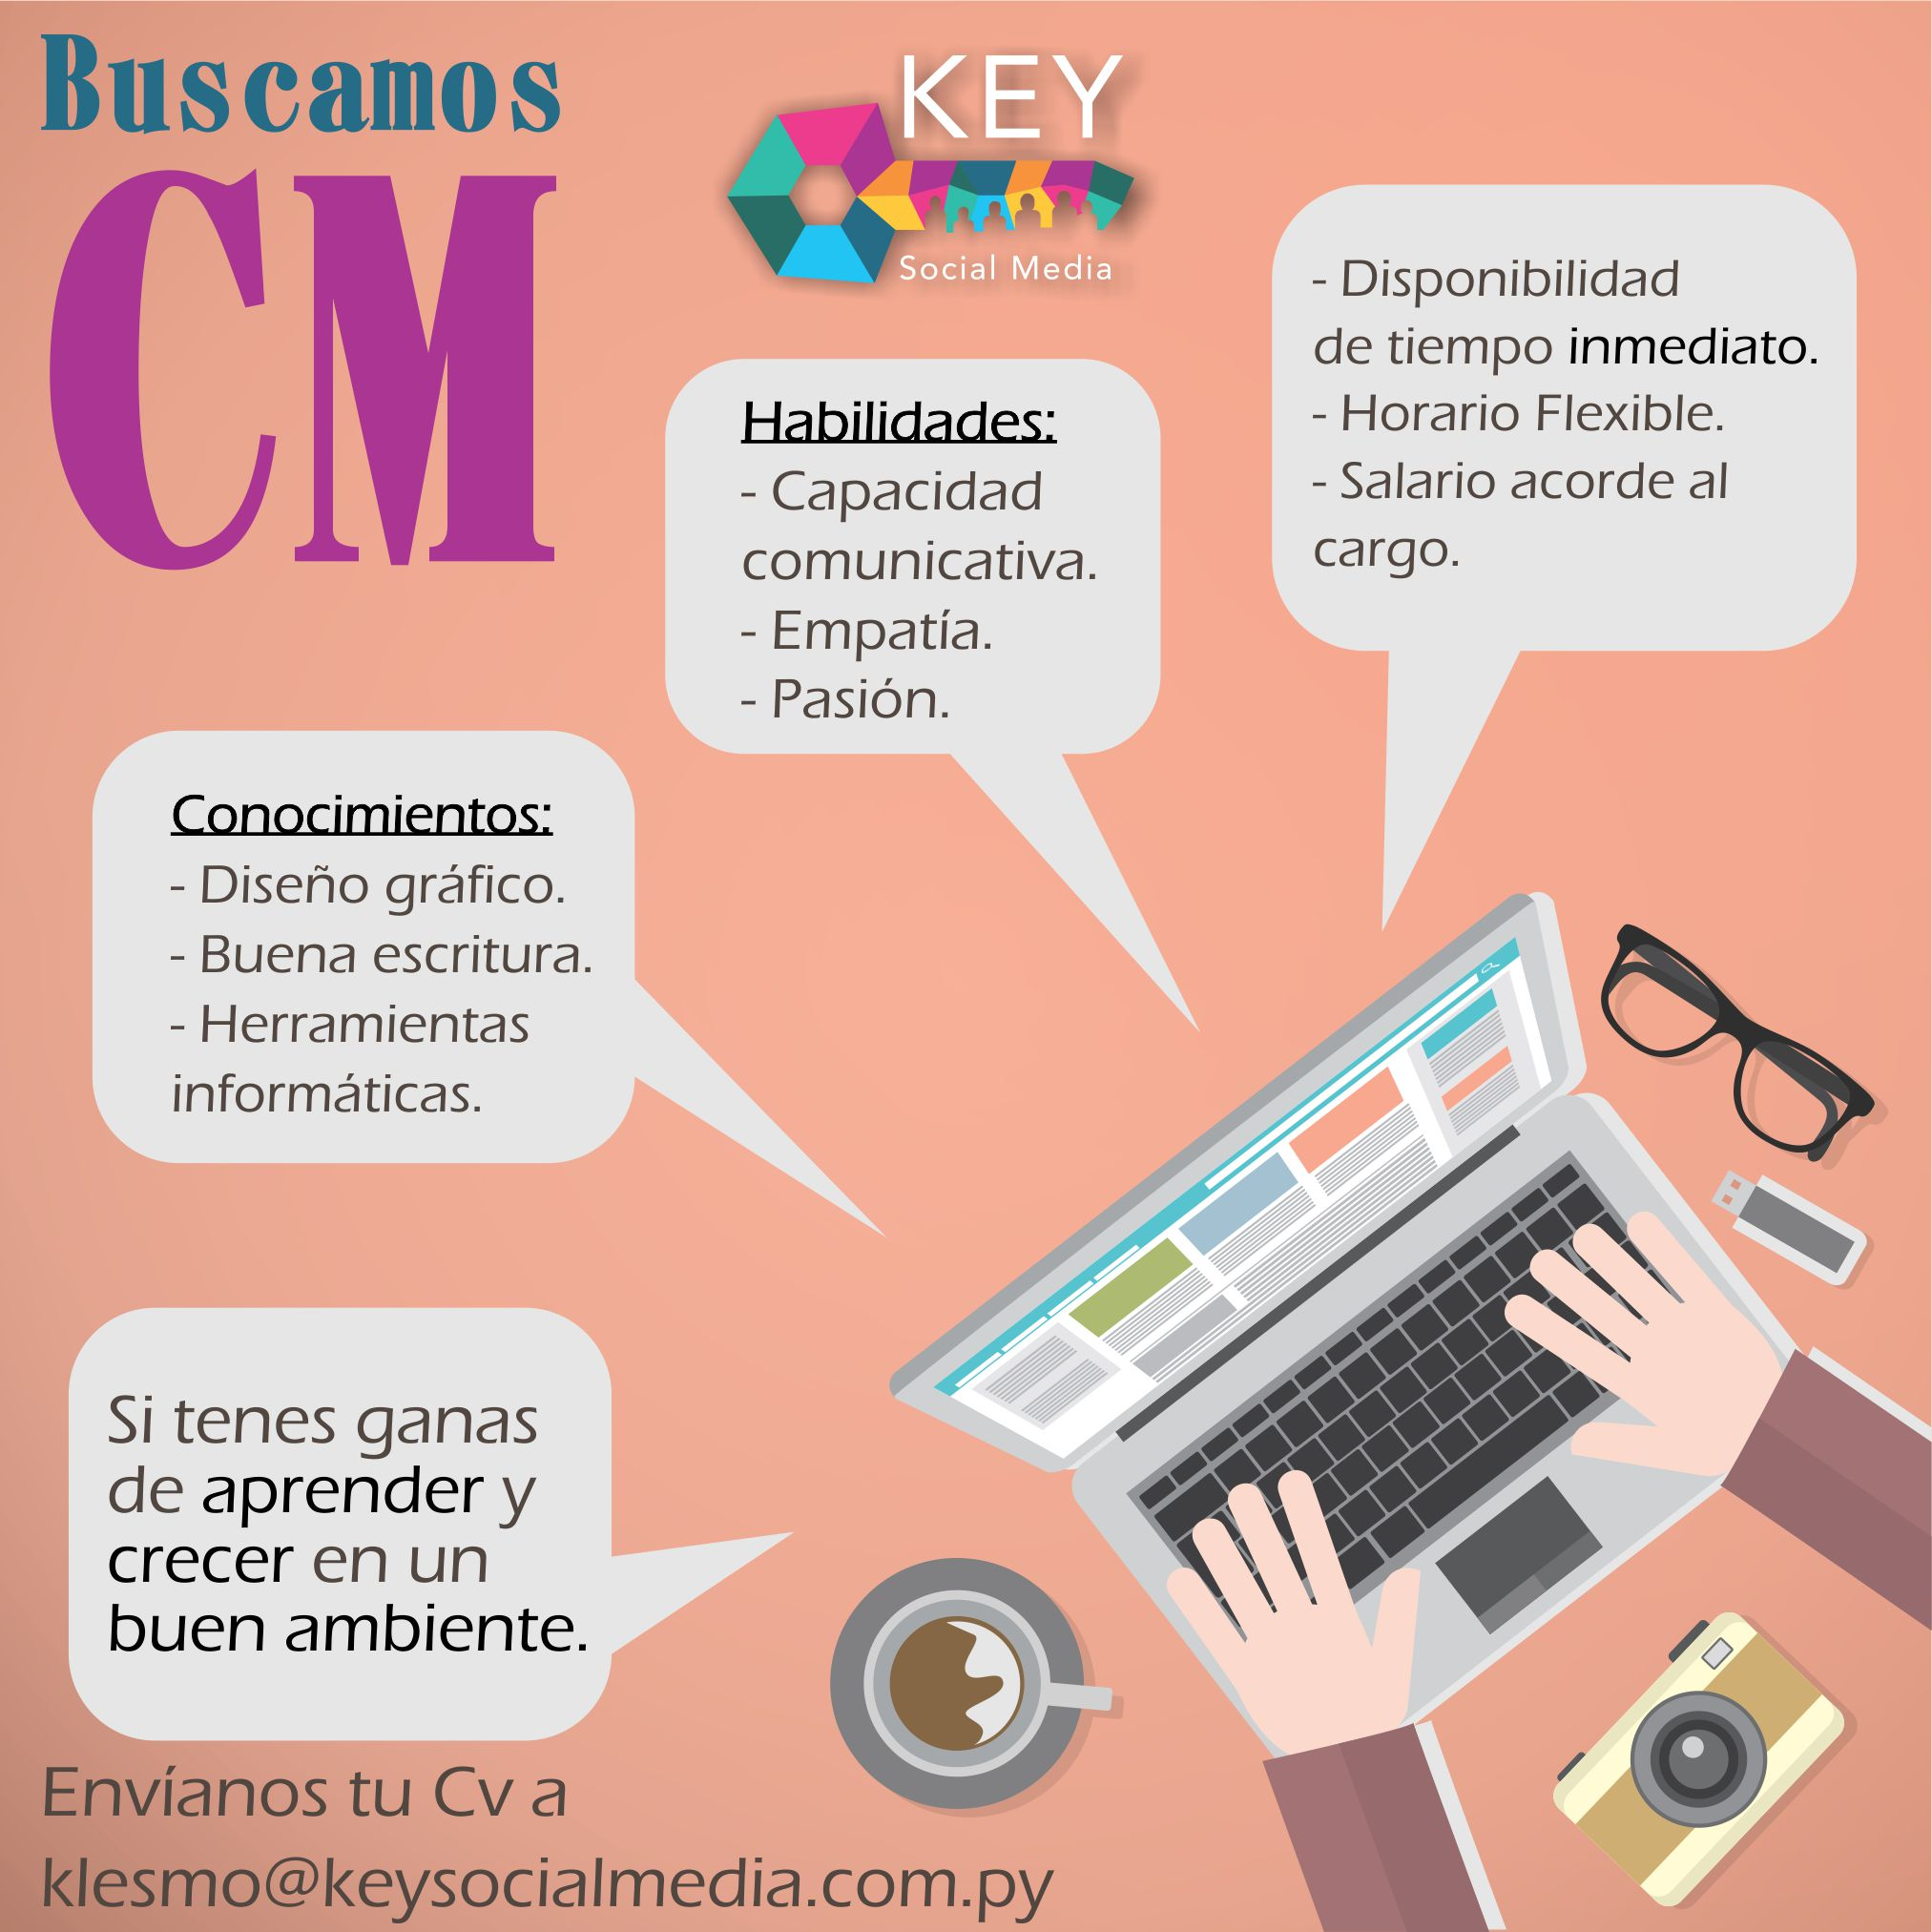 Agencia Digital busca Community Manager